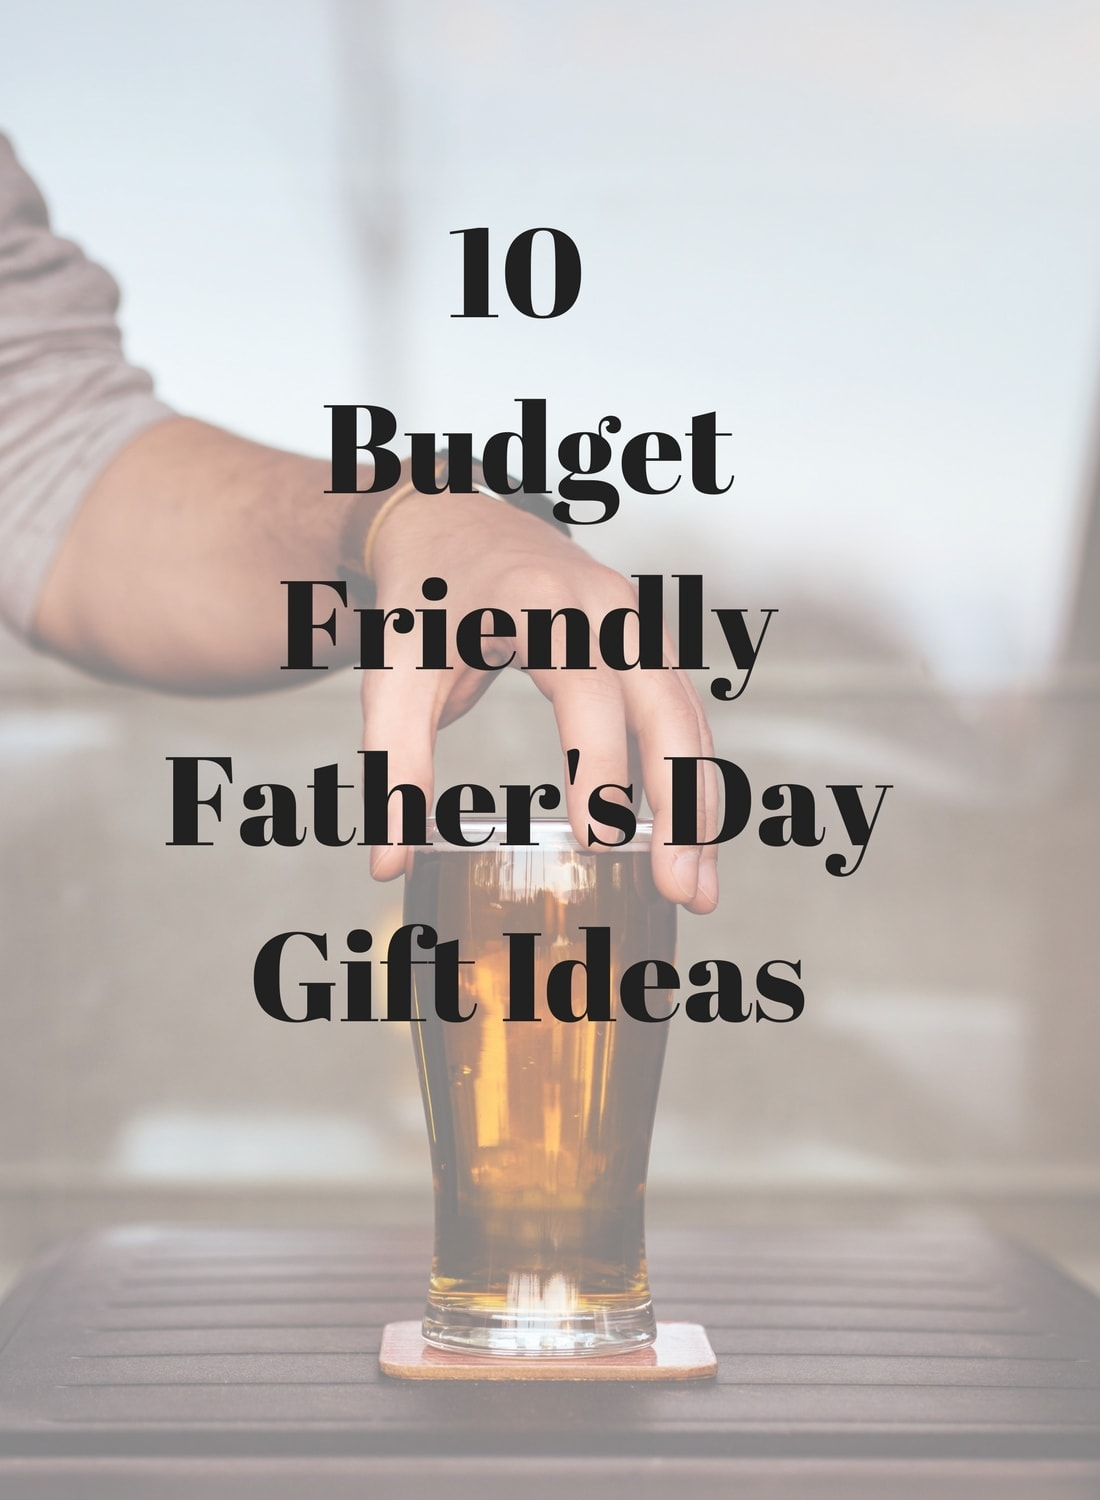 10 Budget Friendly Father's Day Gift Ideas